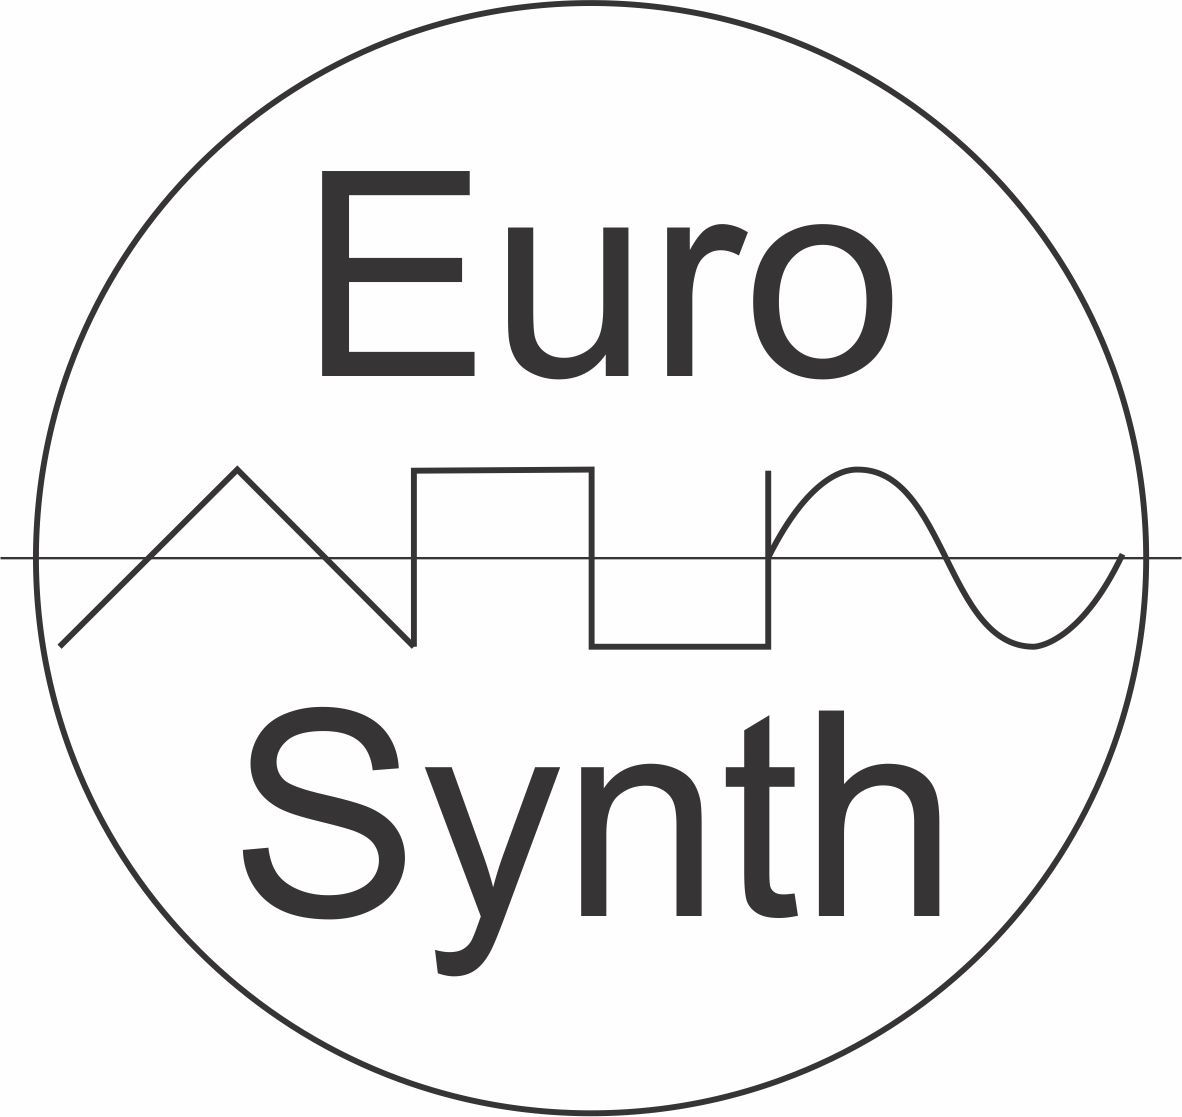 Pin By Dr Diodac On Modular Synthesizers Projects